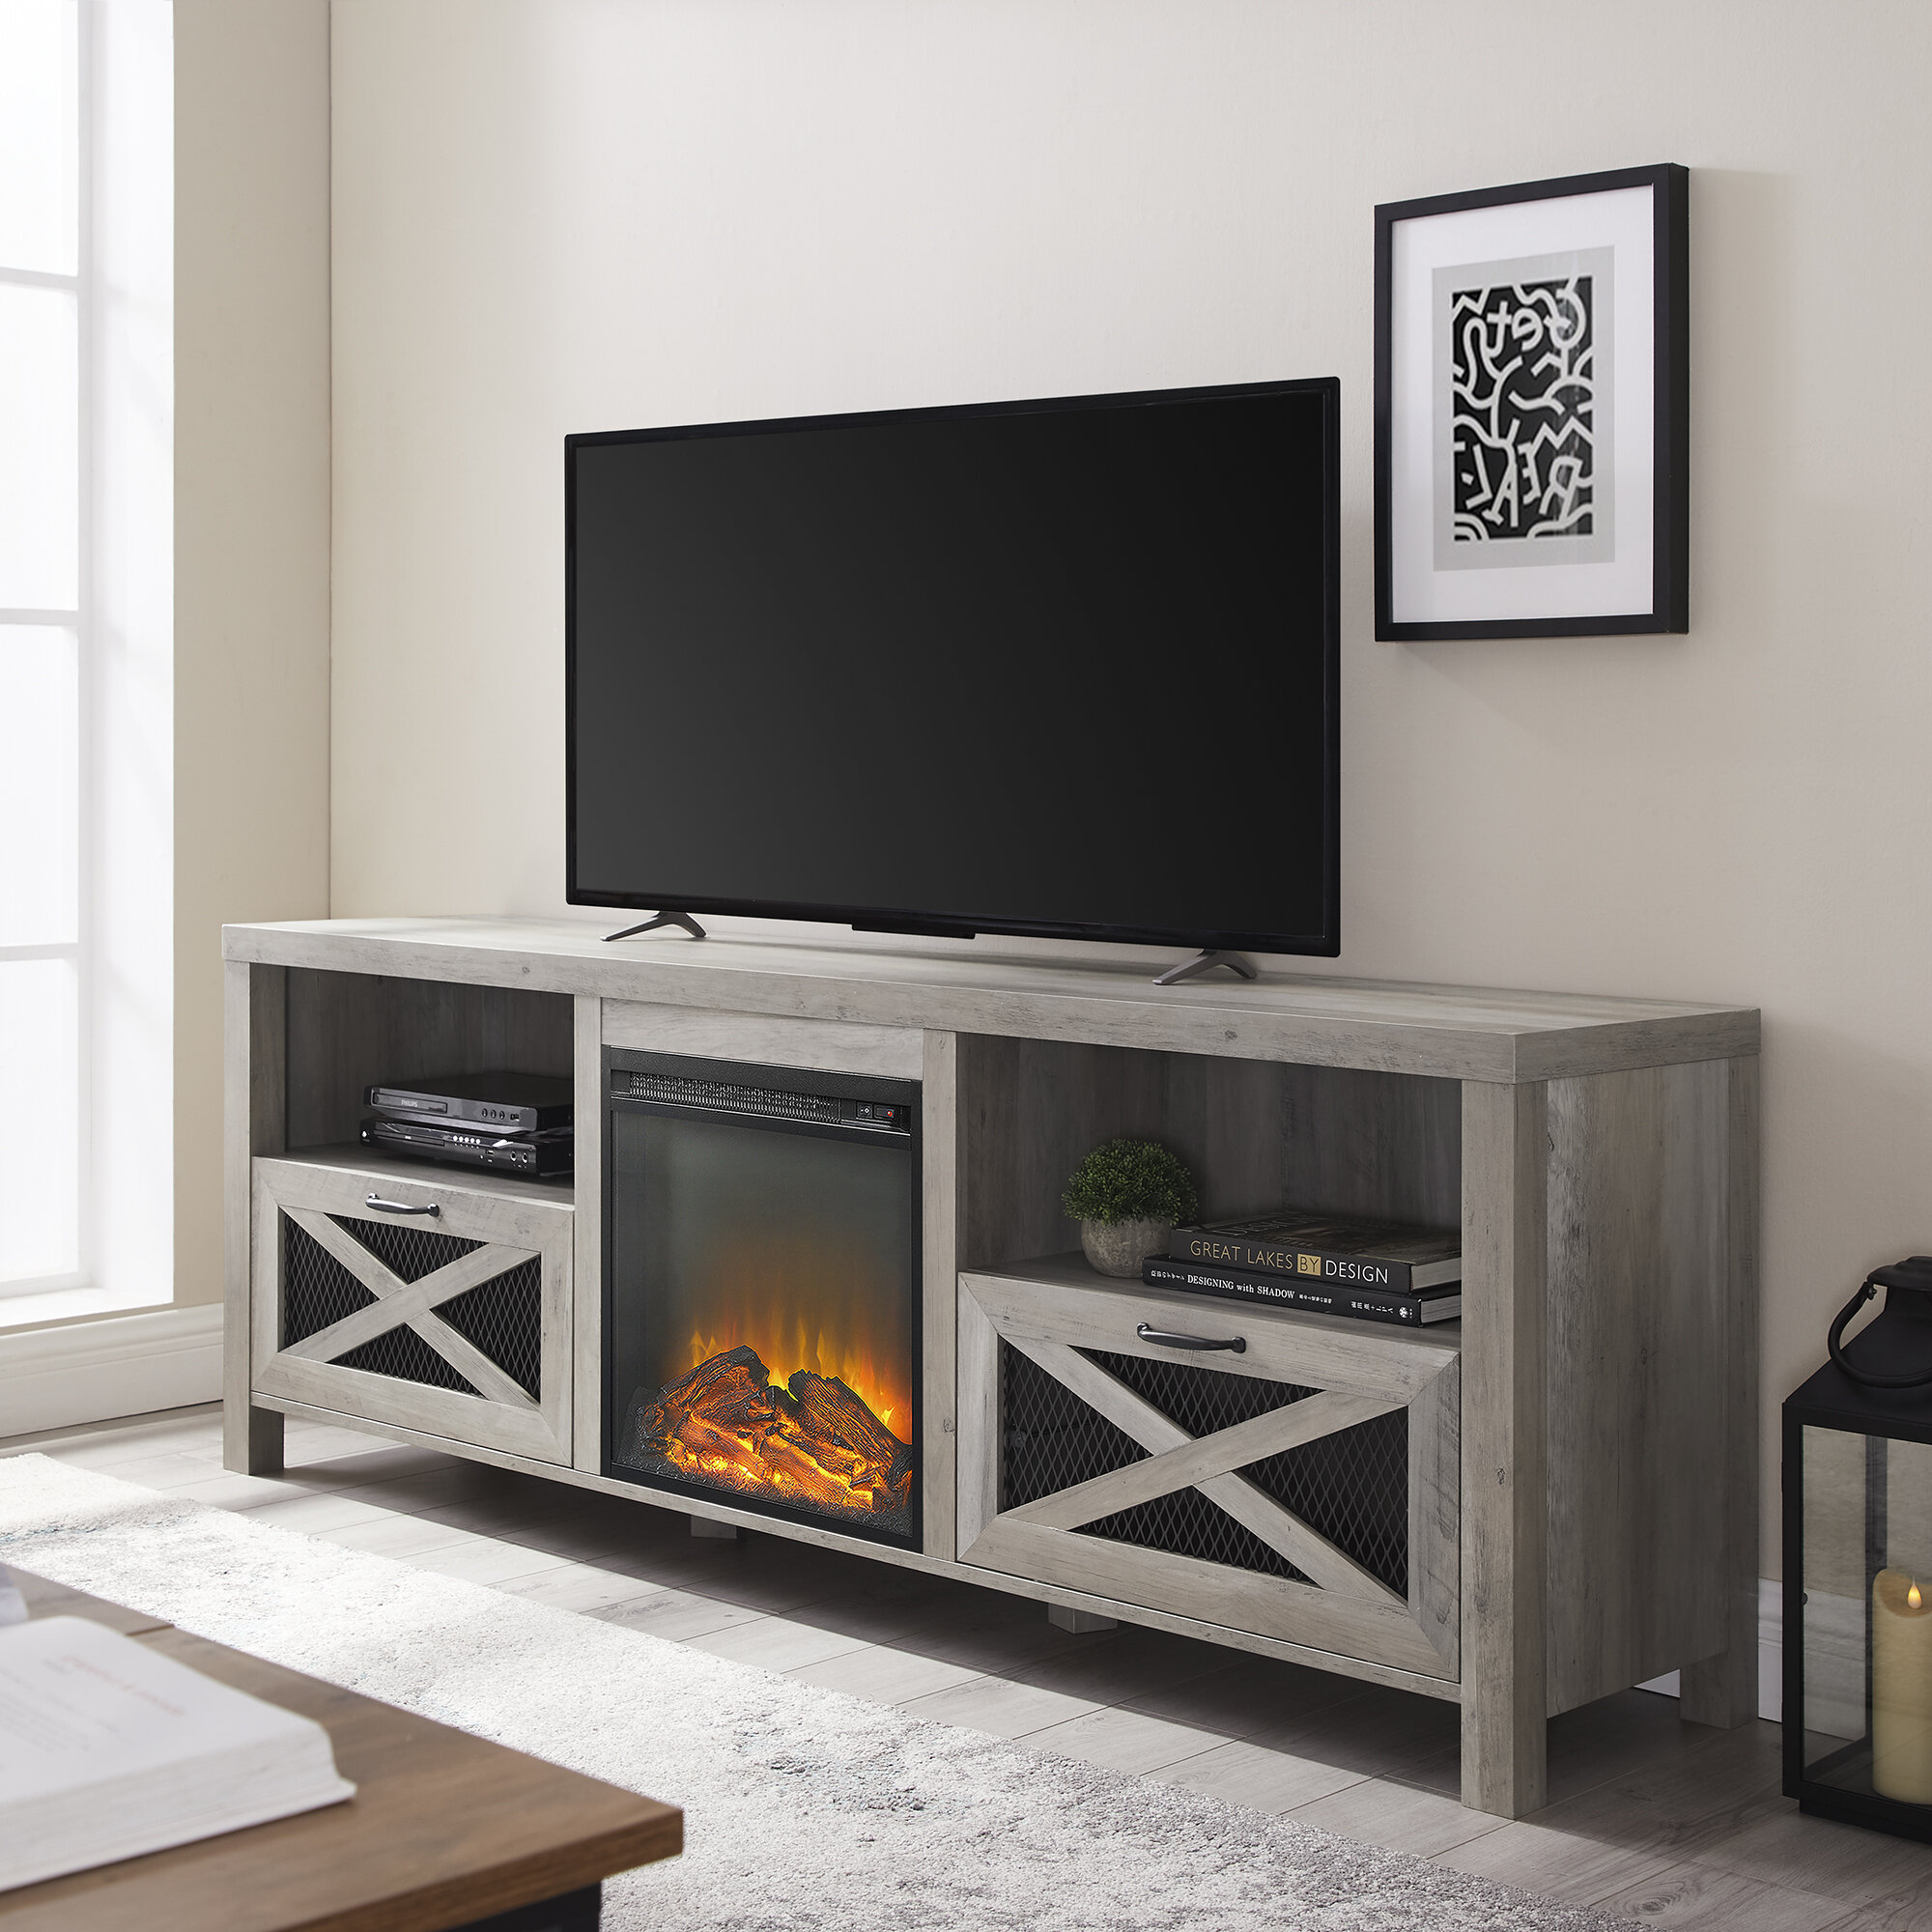 "Modern Tv Stand with Fireplace Elegant Tansey Tv Stand for Tvs Up to 70"" with Electric Fireplace"